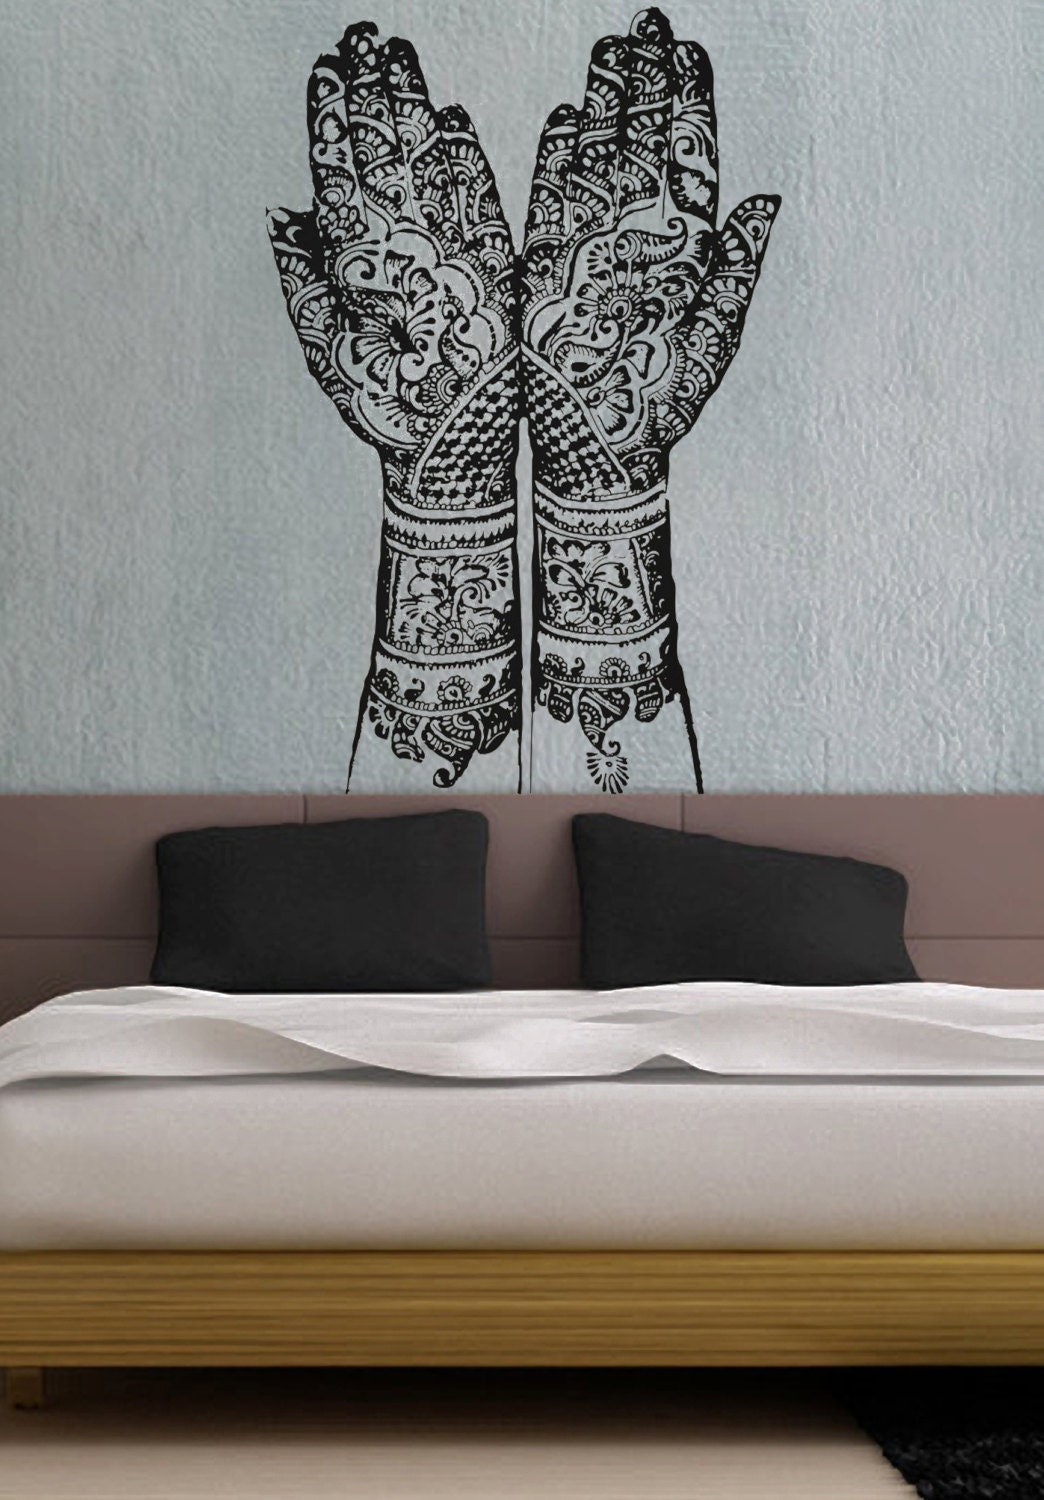 Mehndi Wall Decoration : Henna hands uber decals wall decal vinyl decor art by